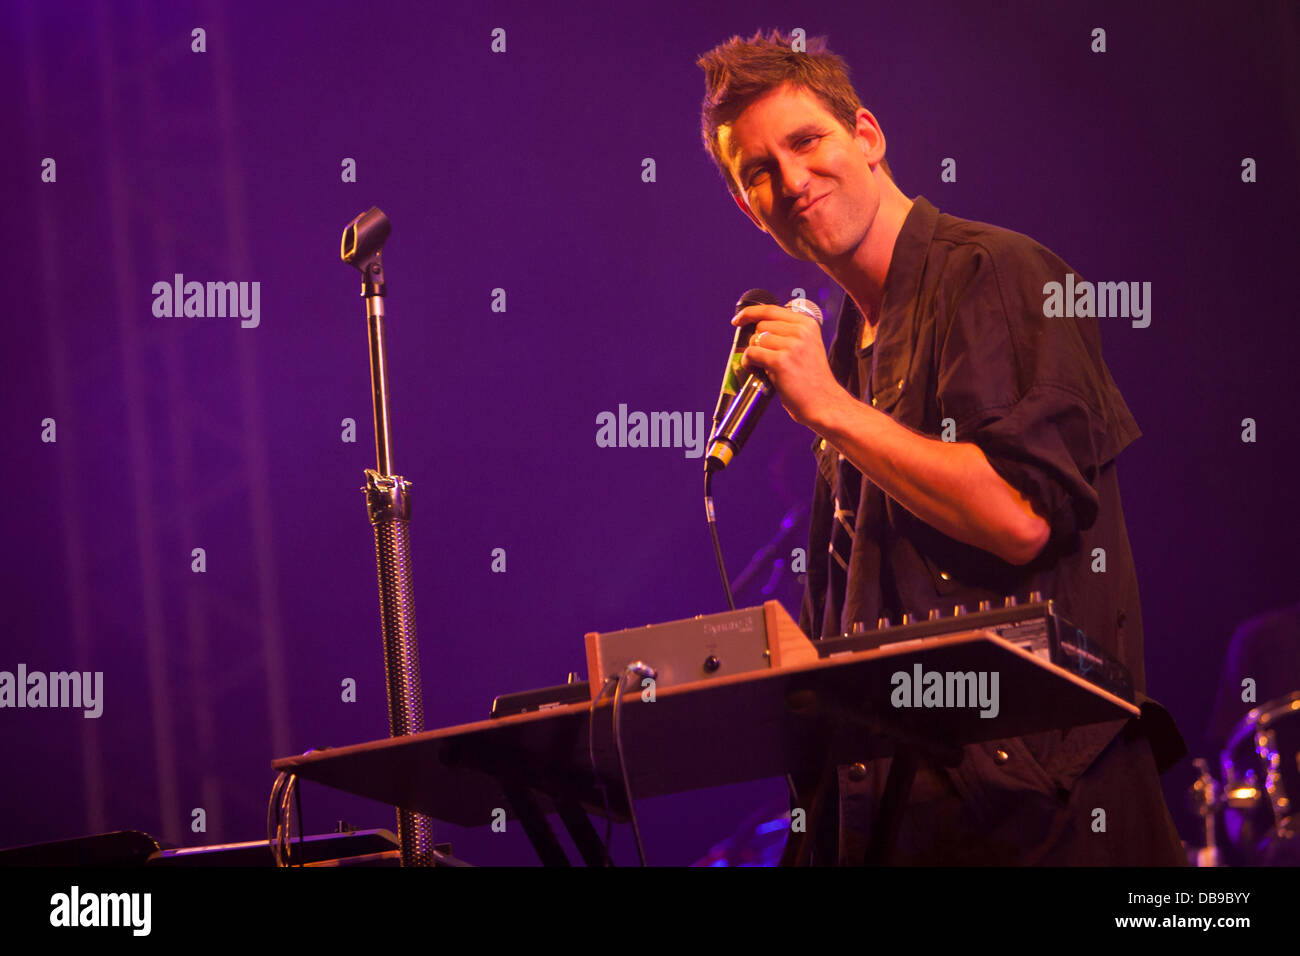 Jamie Lidell performing at the Optimus Alive festival, Lisbon, Portugal. - Stock Image